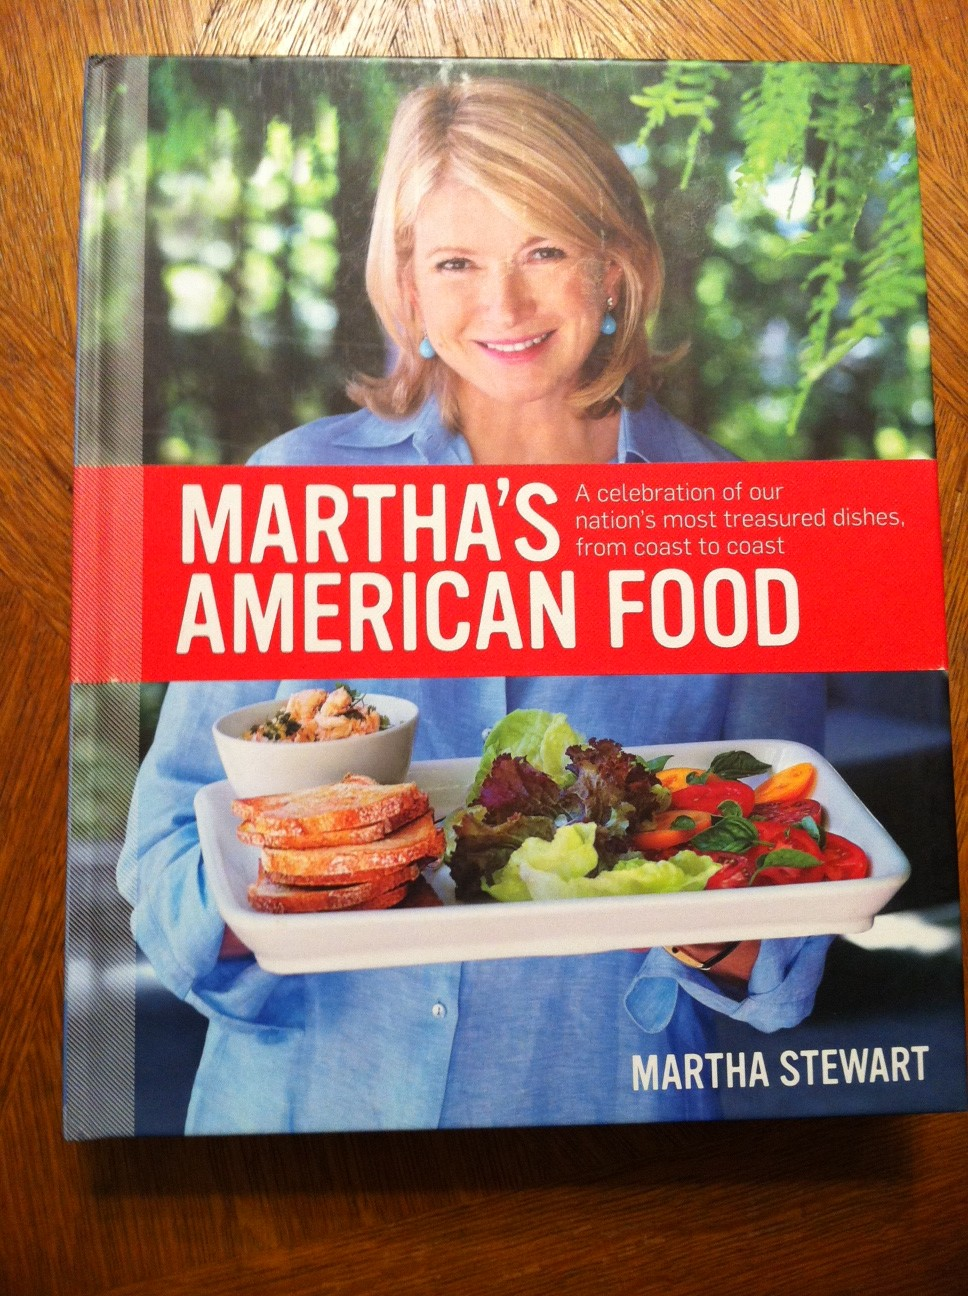 Martha's American Food and Mother's Day